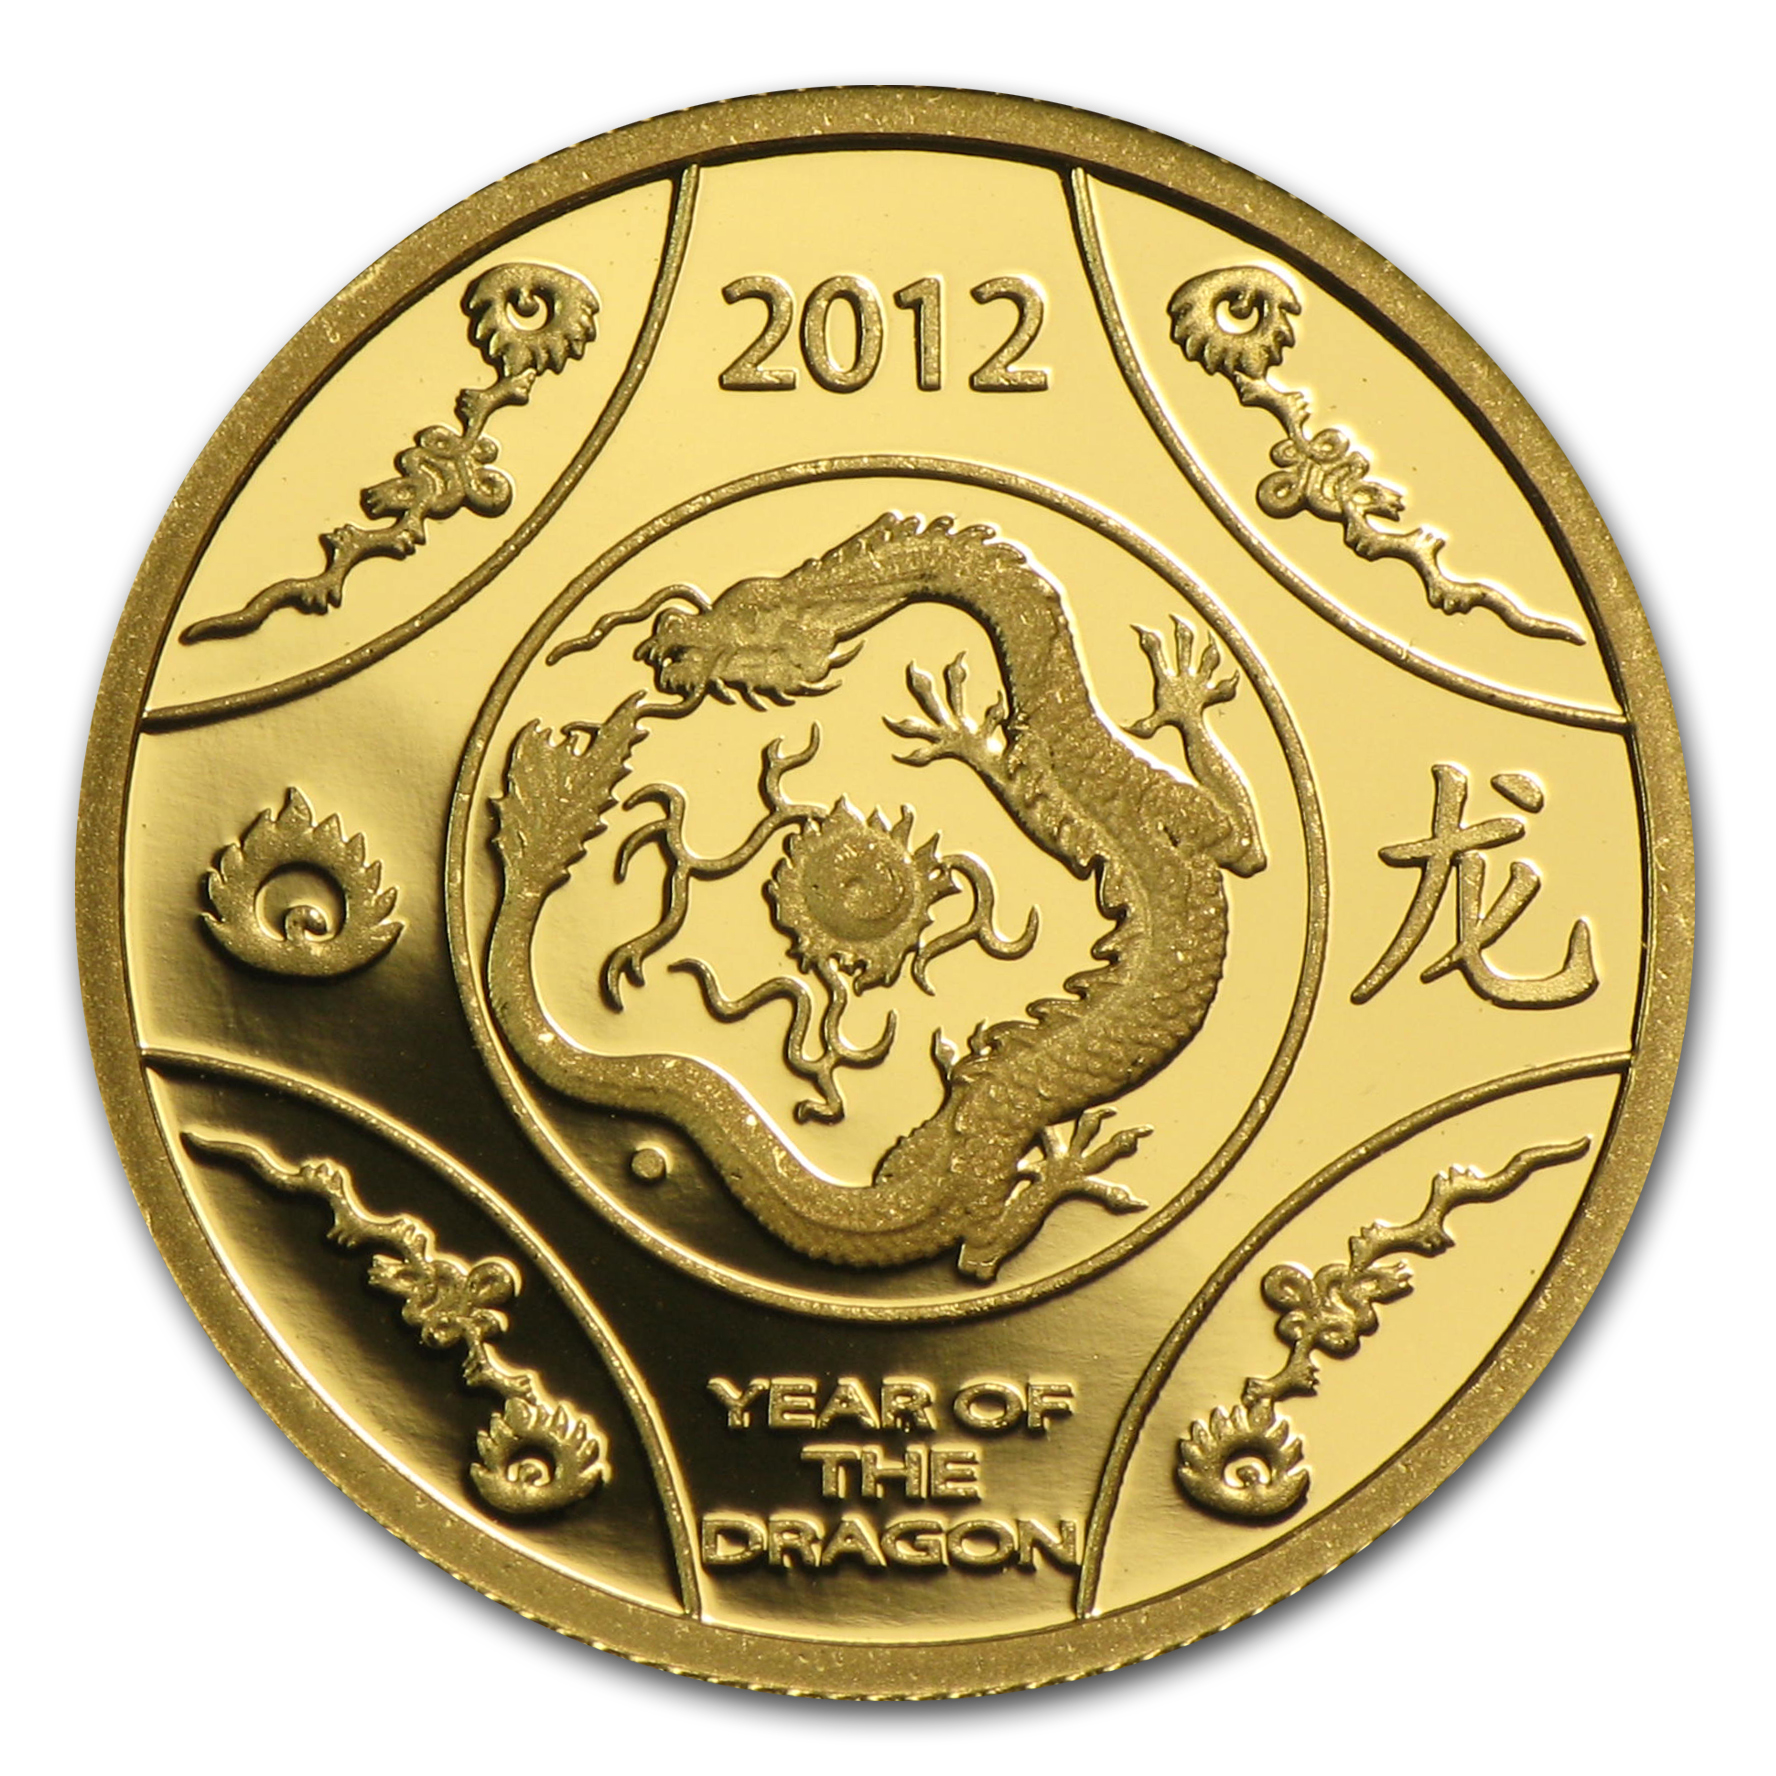 2012 1/10 oz Gold Royal Australian Mint Year of the Dragon Proof